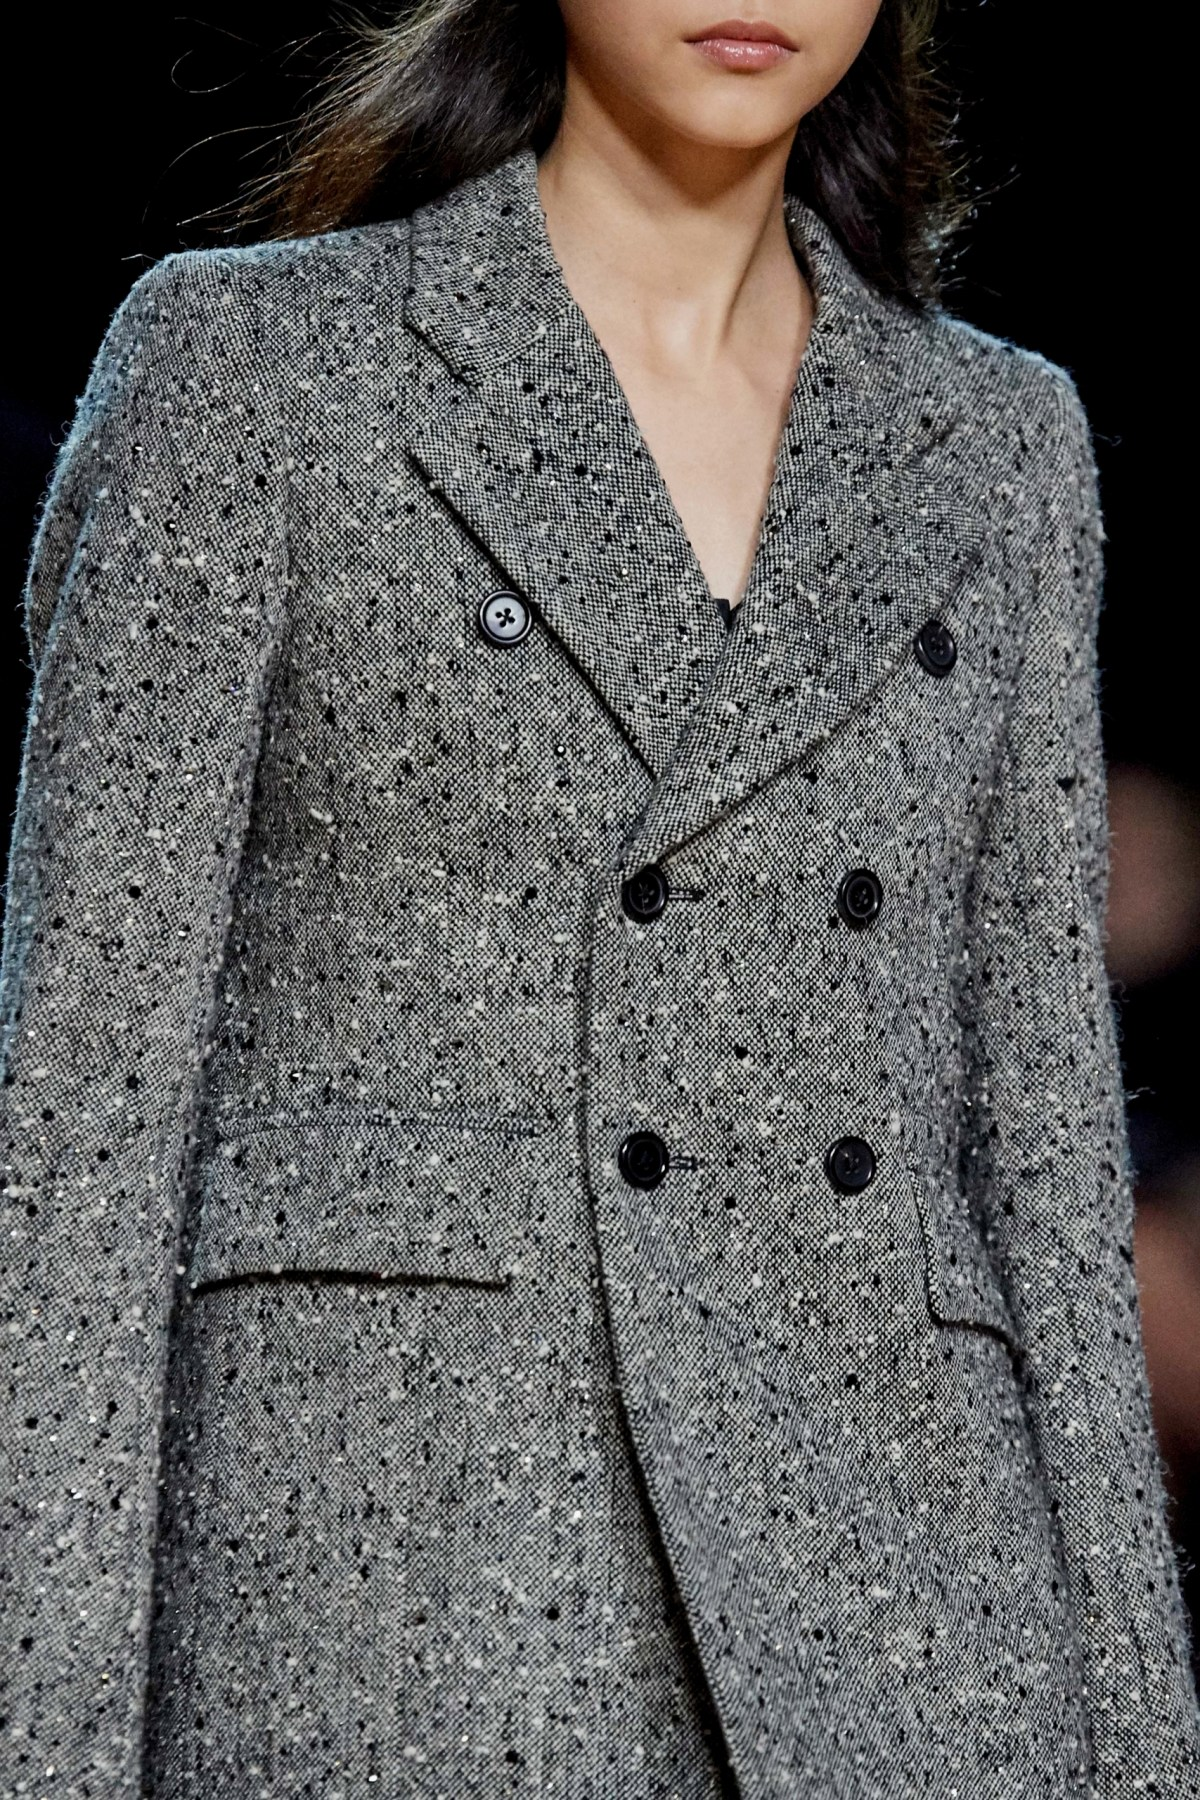 Marc Jacobs Fall/Winter 2020 Ready-to-Wear